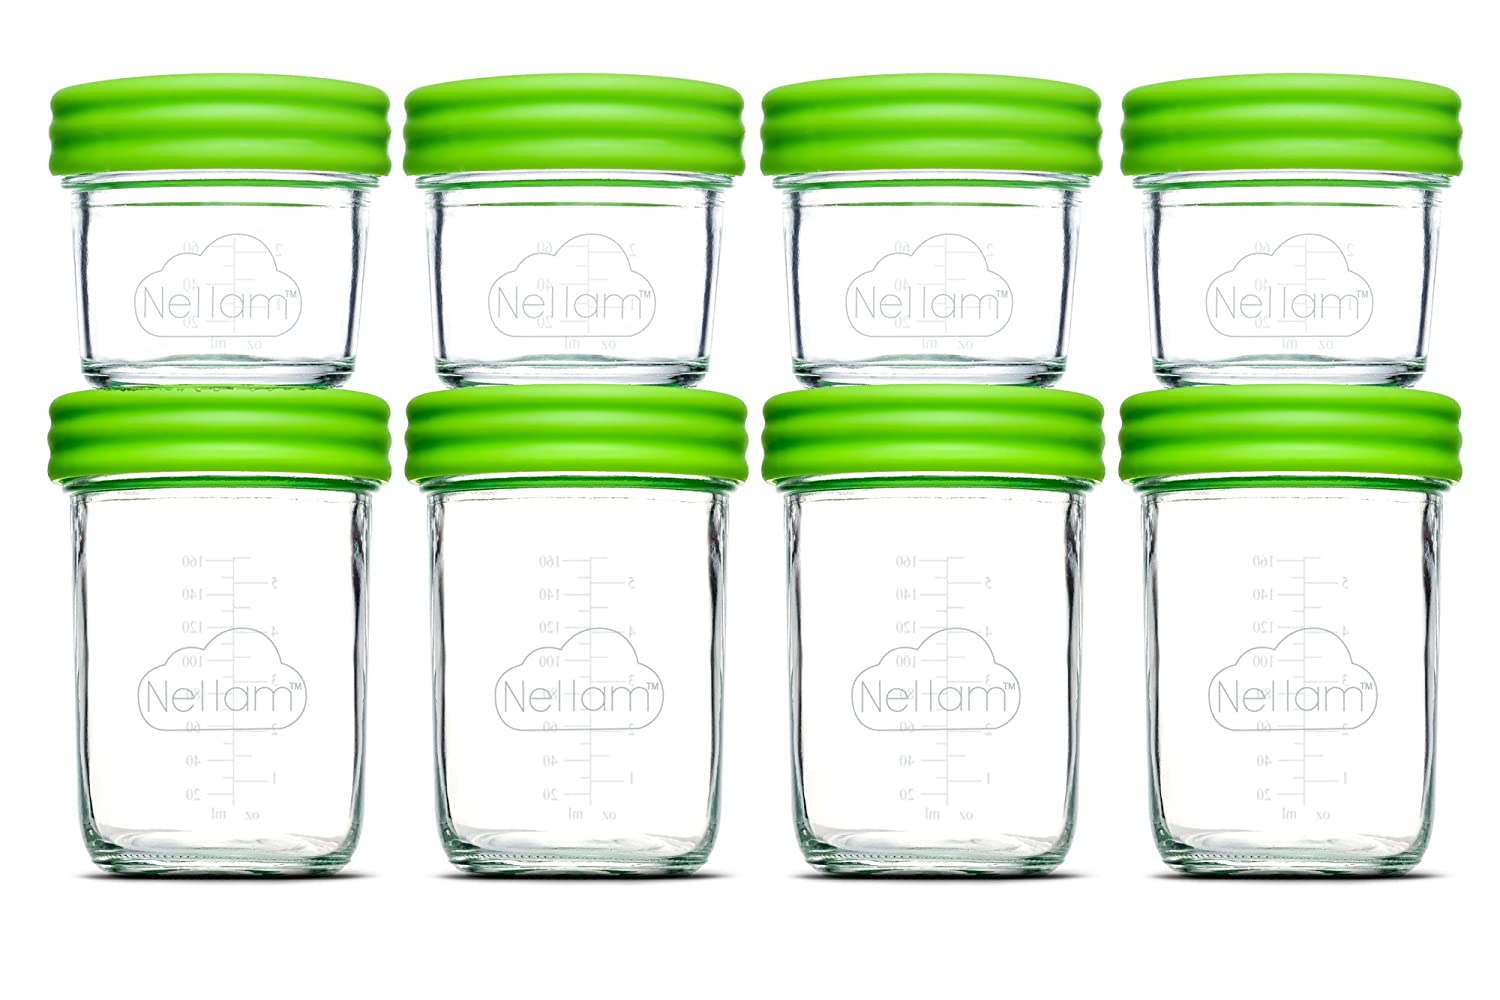 Nellam Baby Food Storage Containers - Leakproof, Airtight, Glass Jars for Freezing & Homemade Babyfood Prep